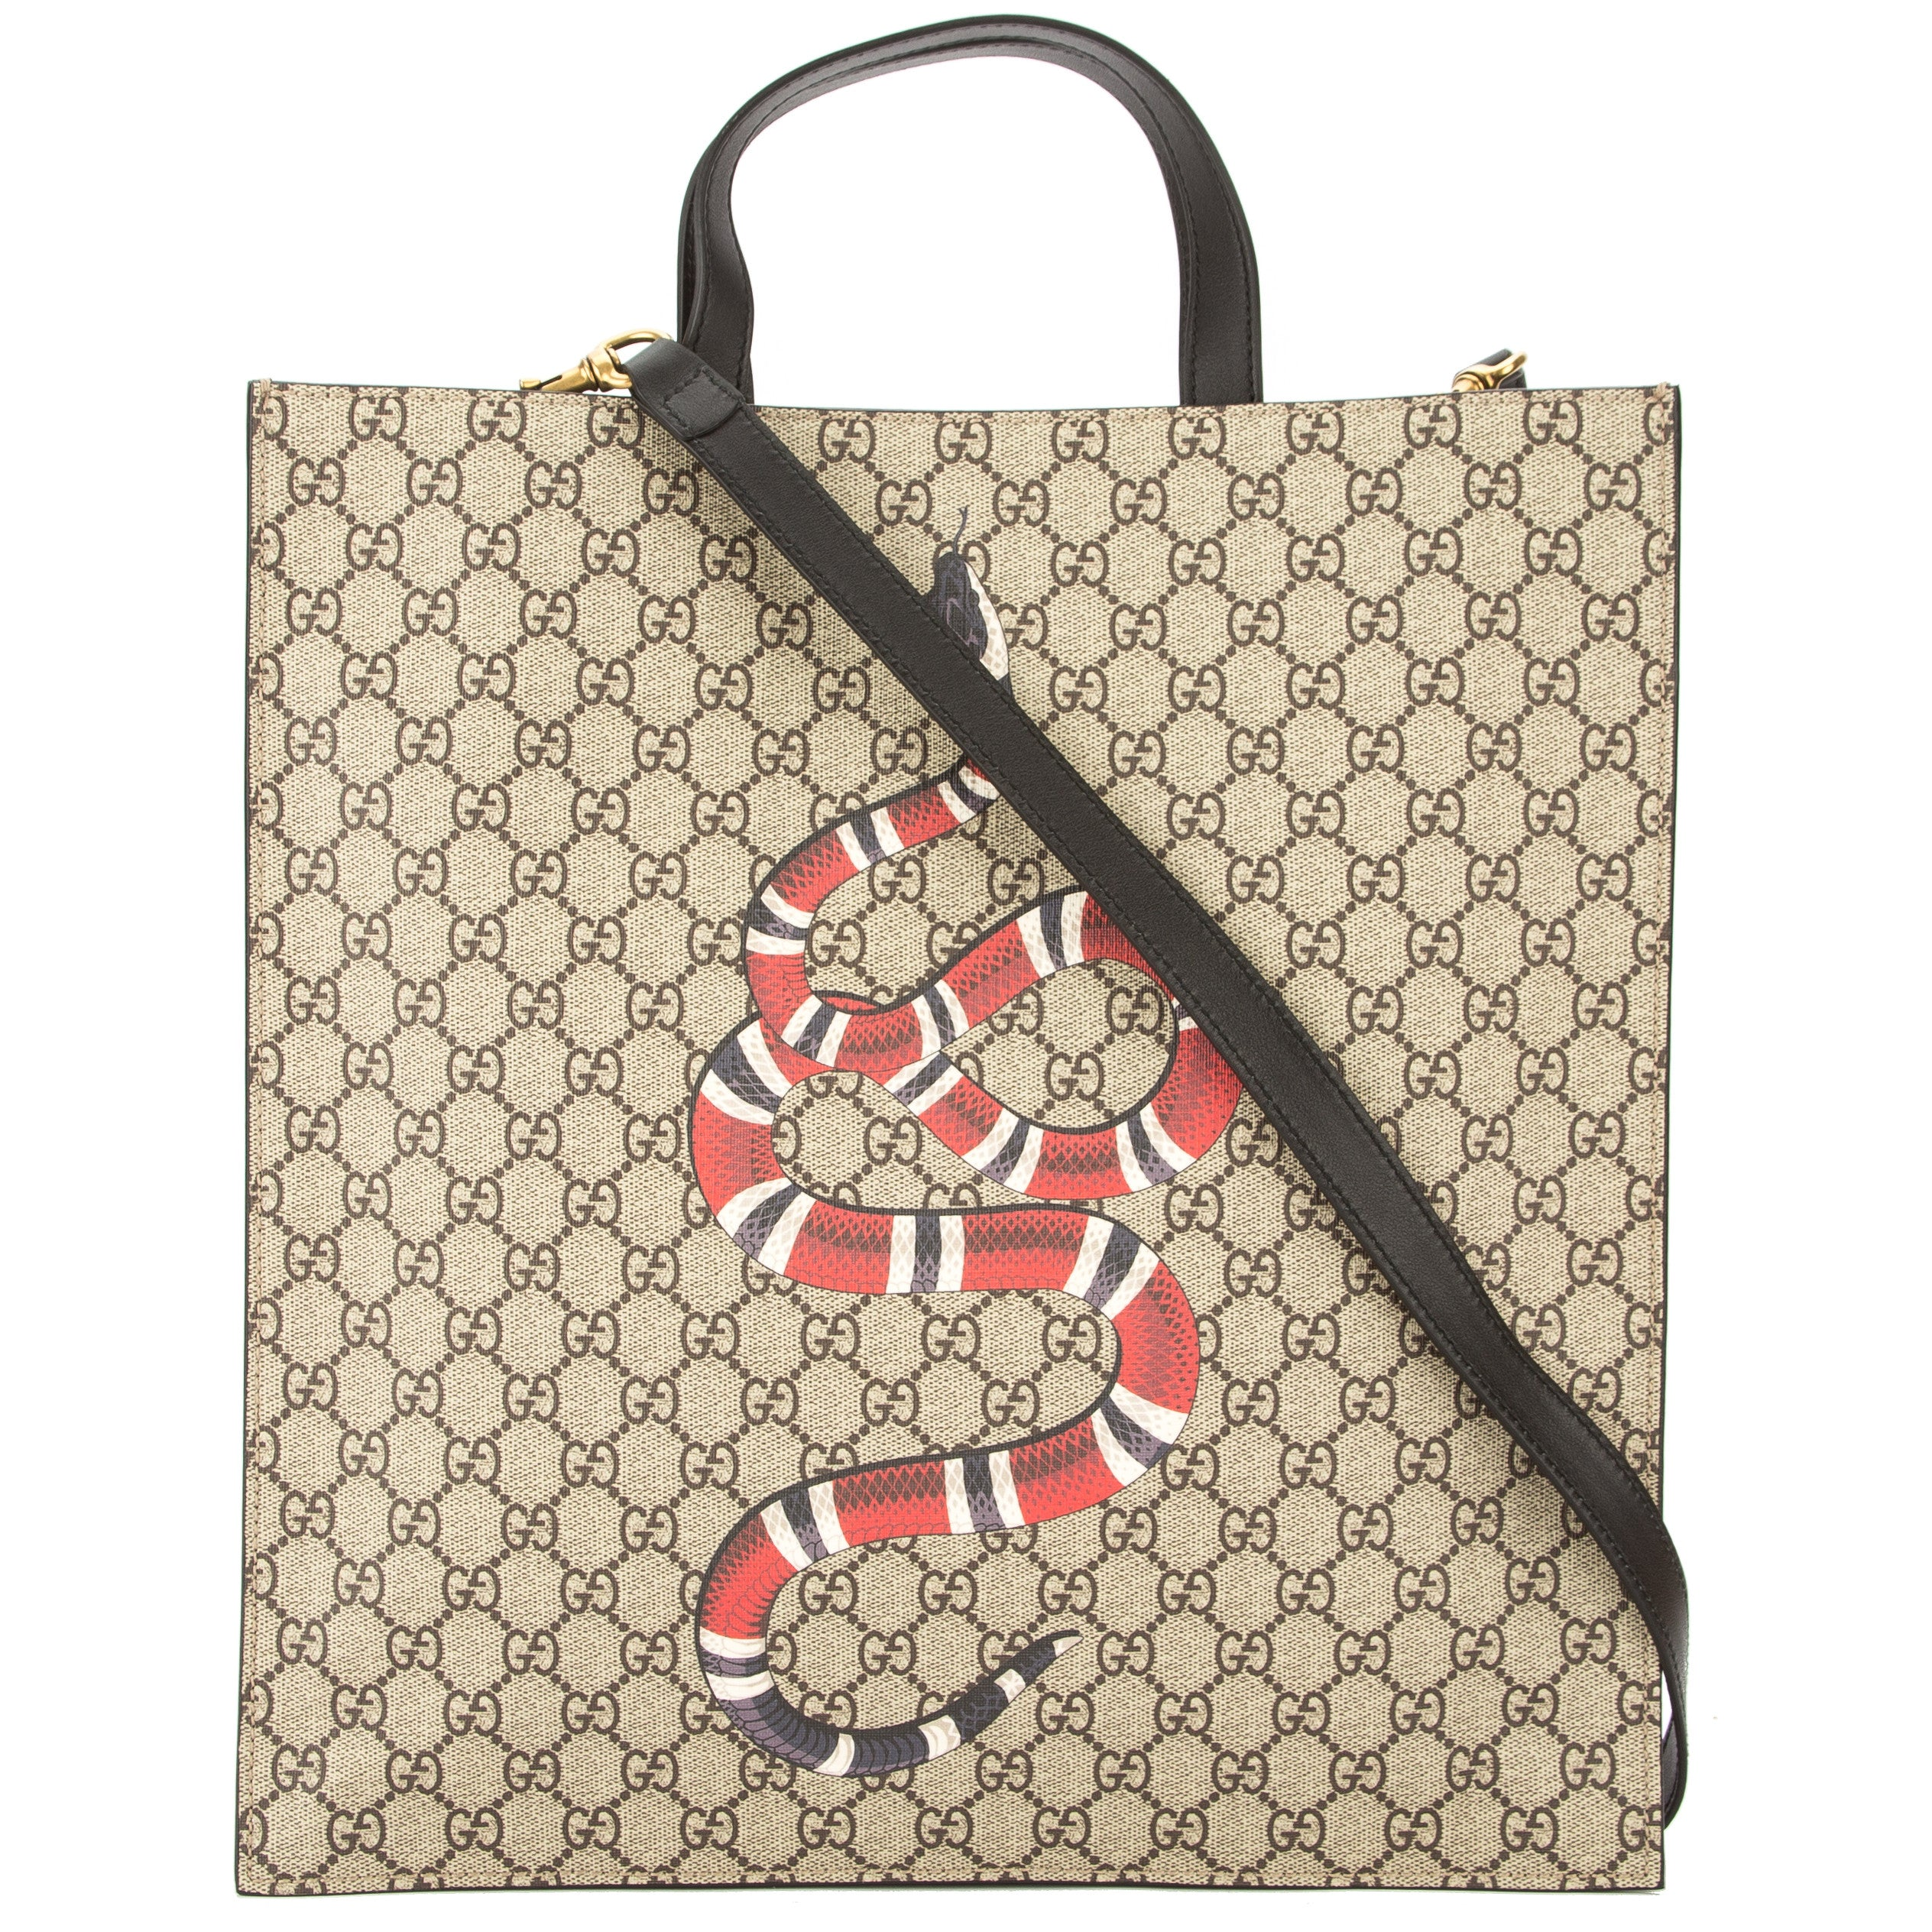 bfa42dfc5bc3 Gucci Brown Leather Soft GG Supreme Canvas Snake Print Tote New with Tags